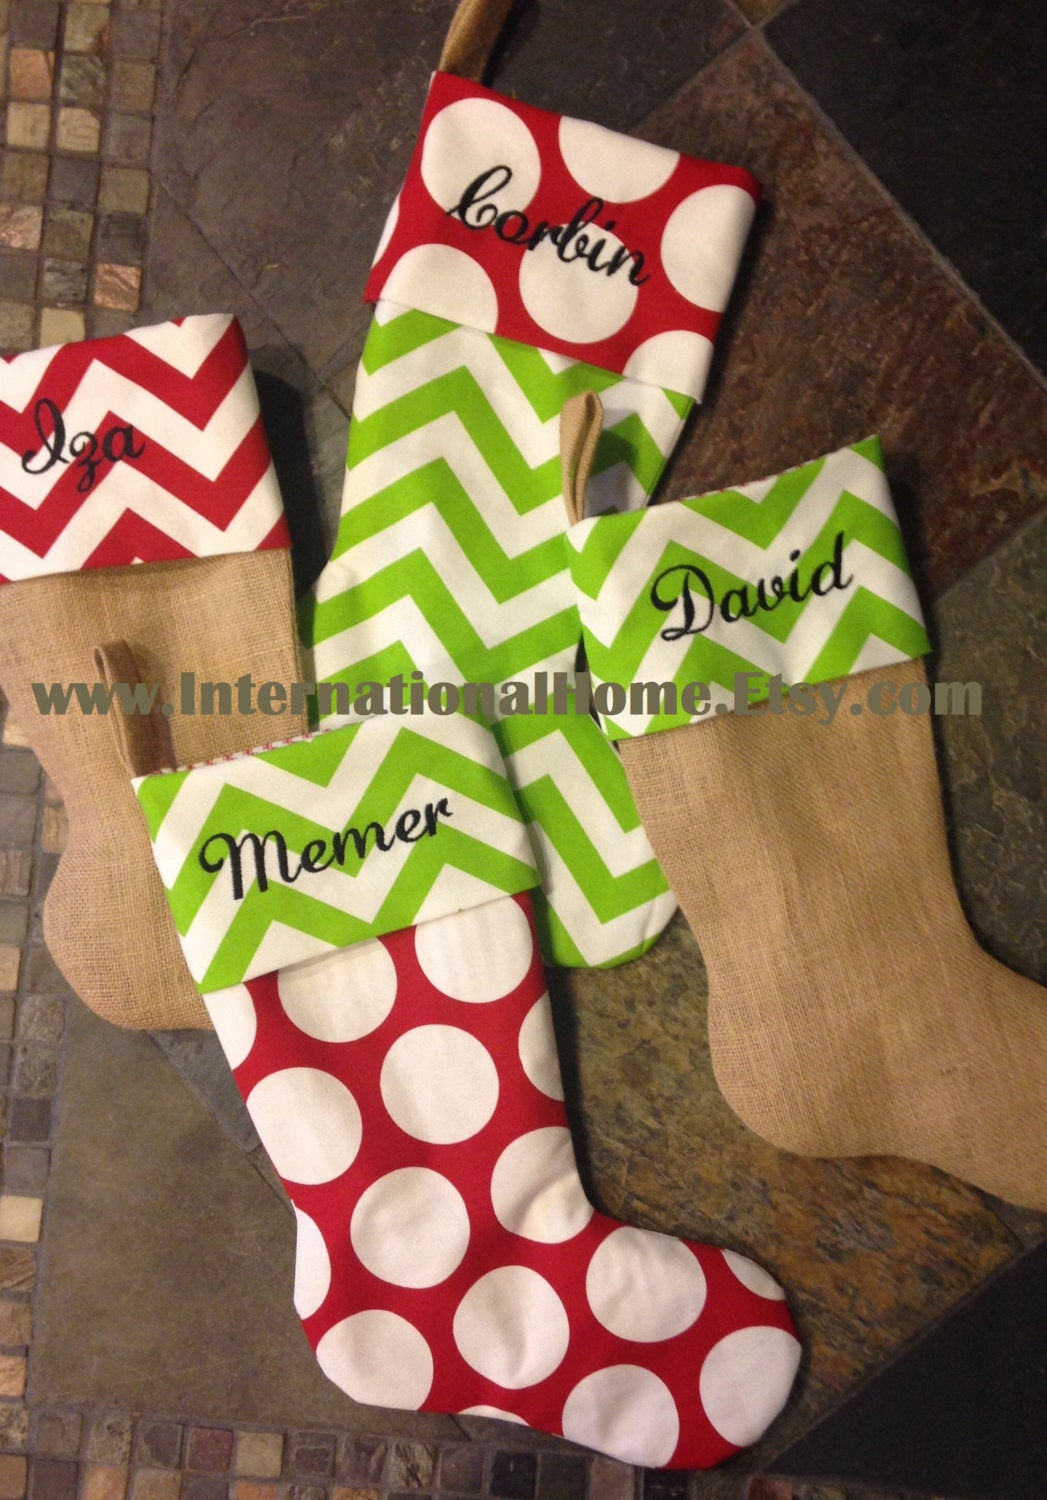 Set of 6 Custom made Christmas Stockings w/ FREE SHIPPING!